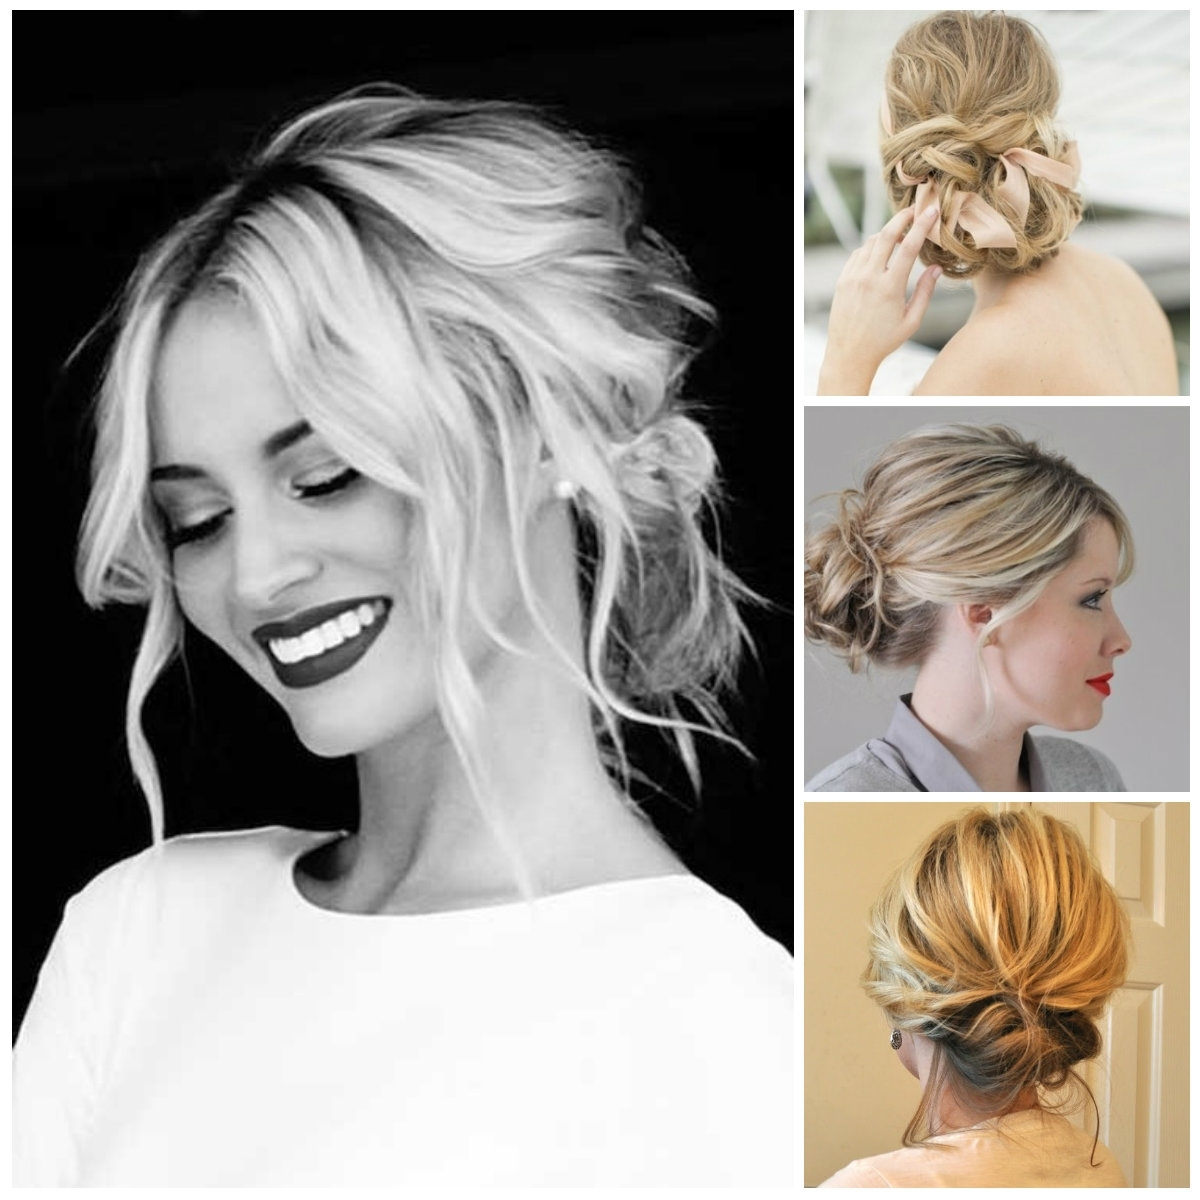 Latest Easy Wedding Hairstyles For Medium Length Hair Inside Easy Updo Medium Hair – Hairstyle For Women & Man (View 6 of 15)